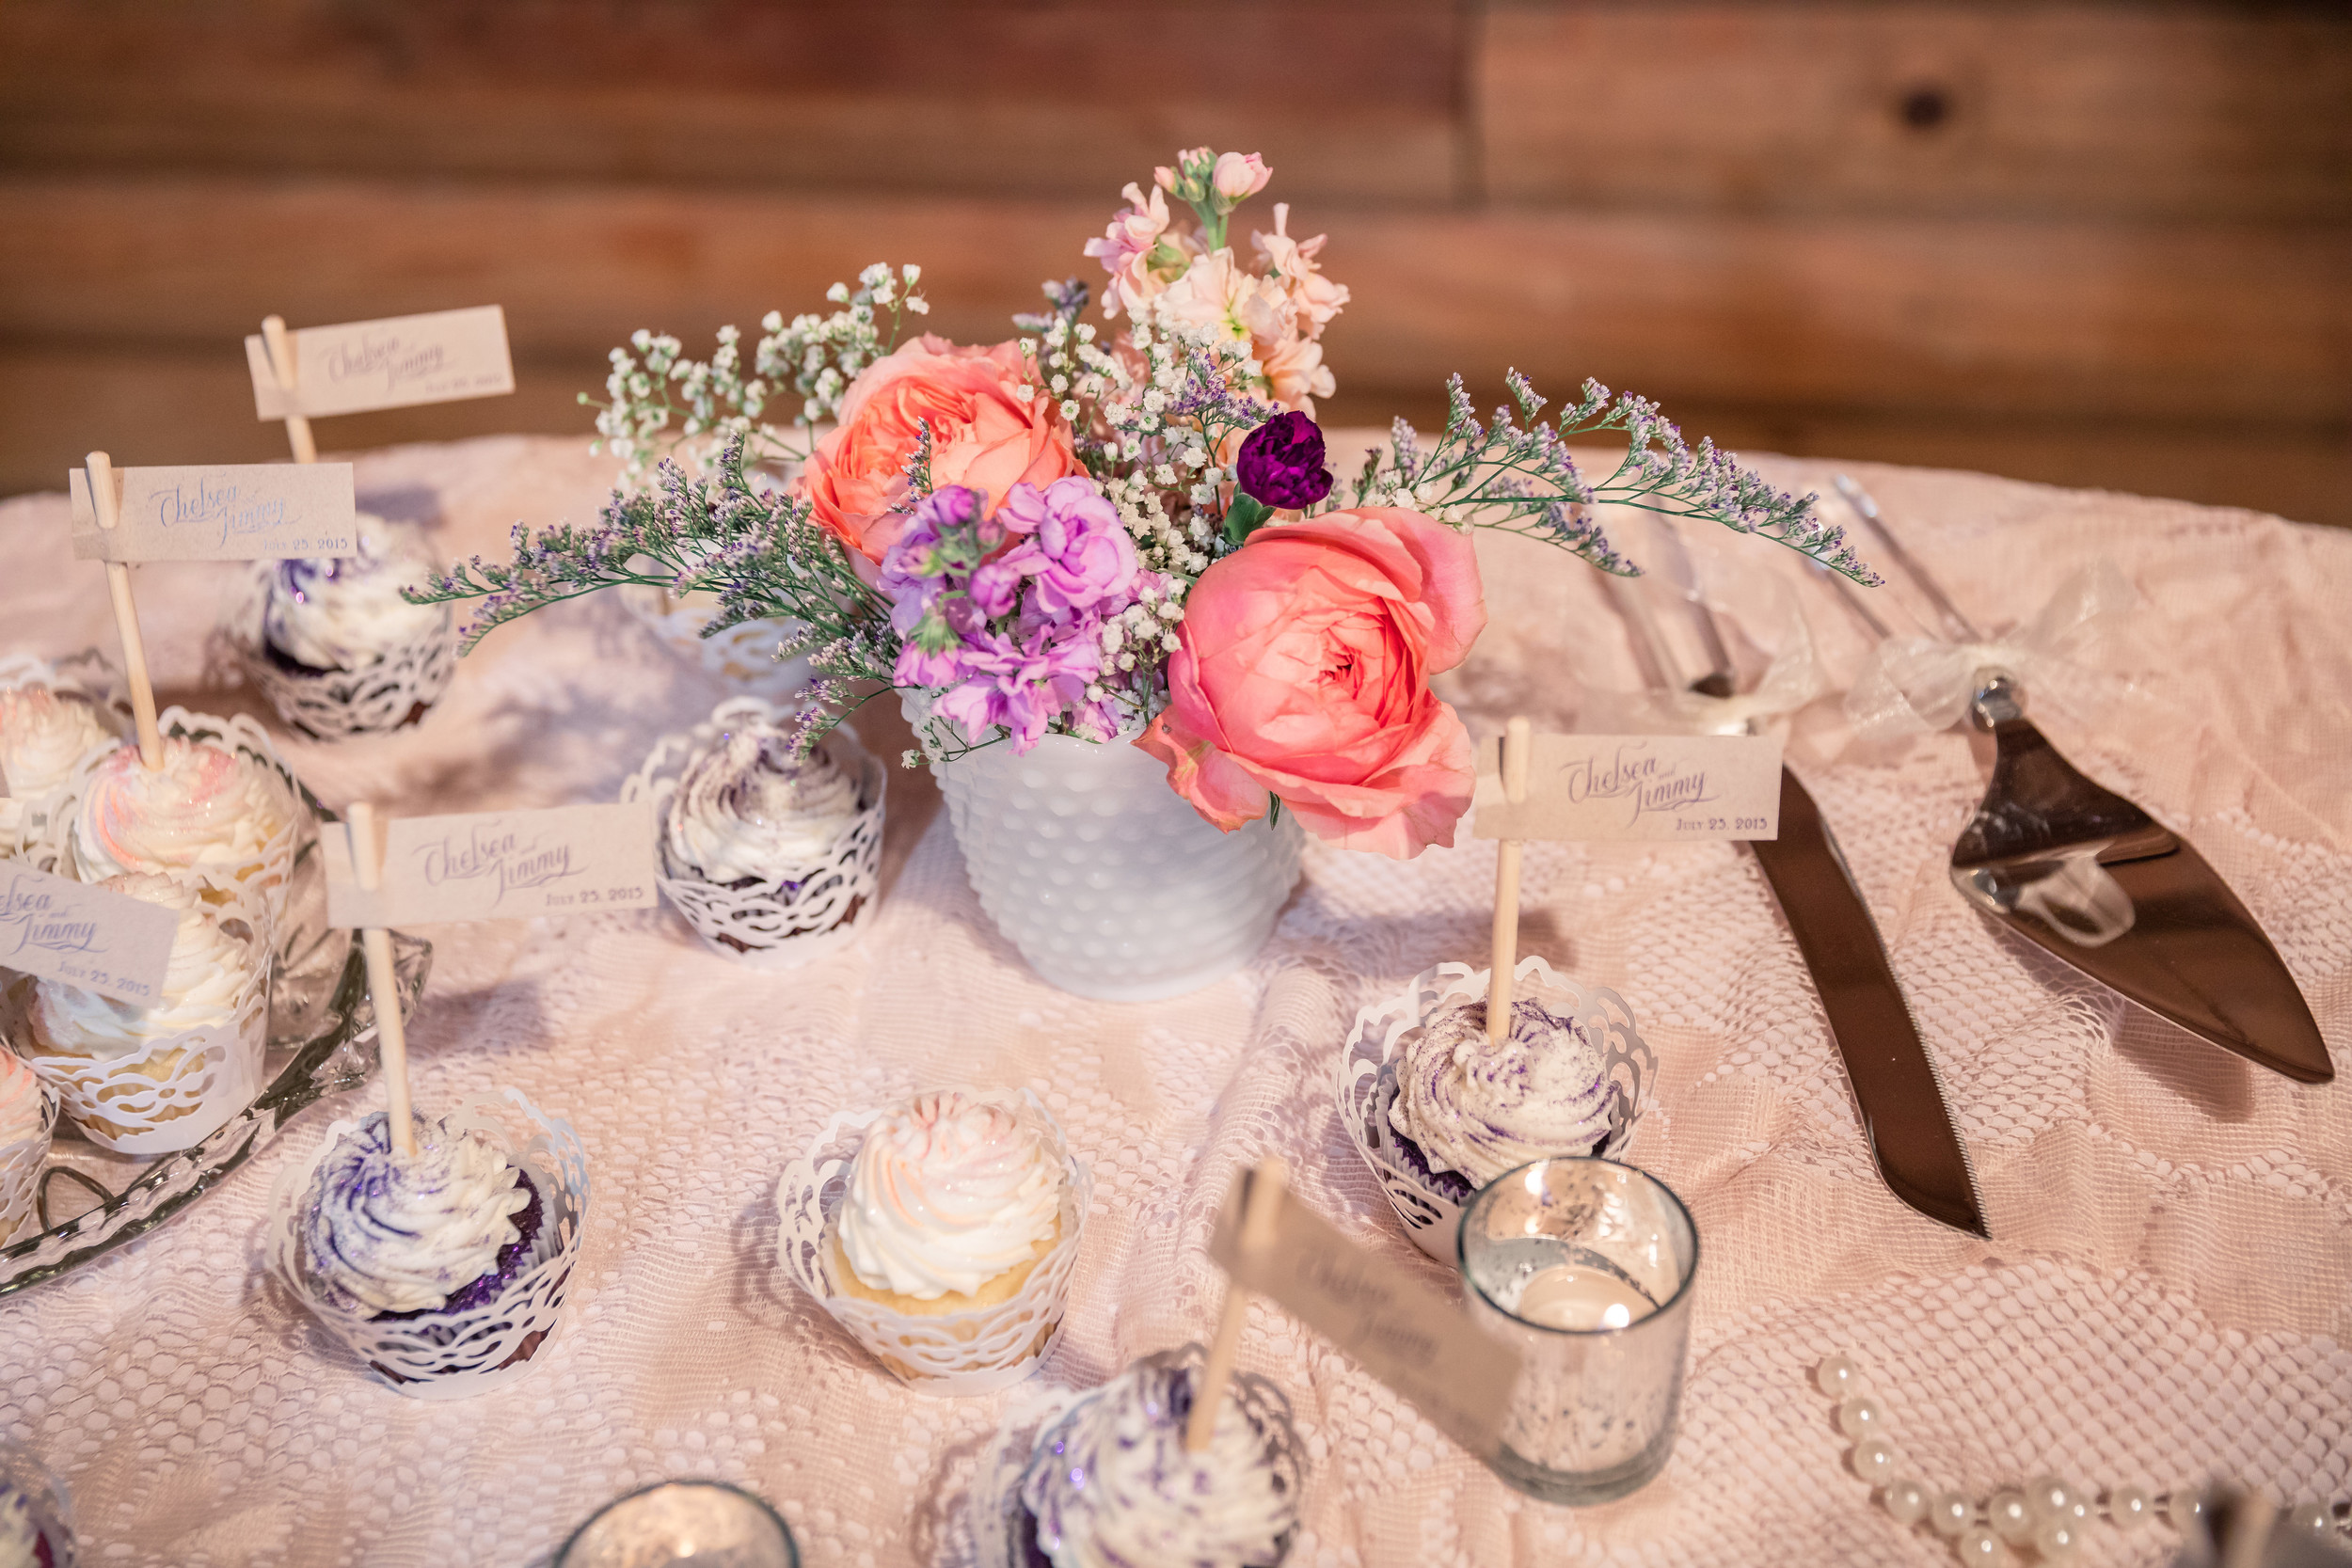 AddisonGrace Events | Wichita, Kansas Wedding & Event Planner | Jimmy & Chelsea